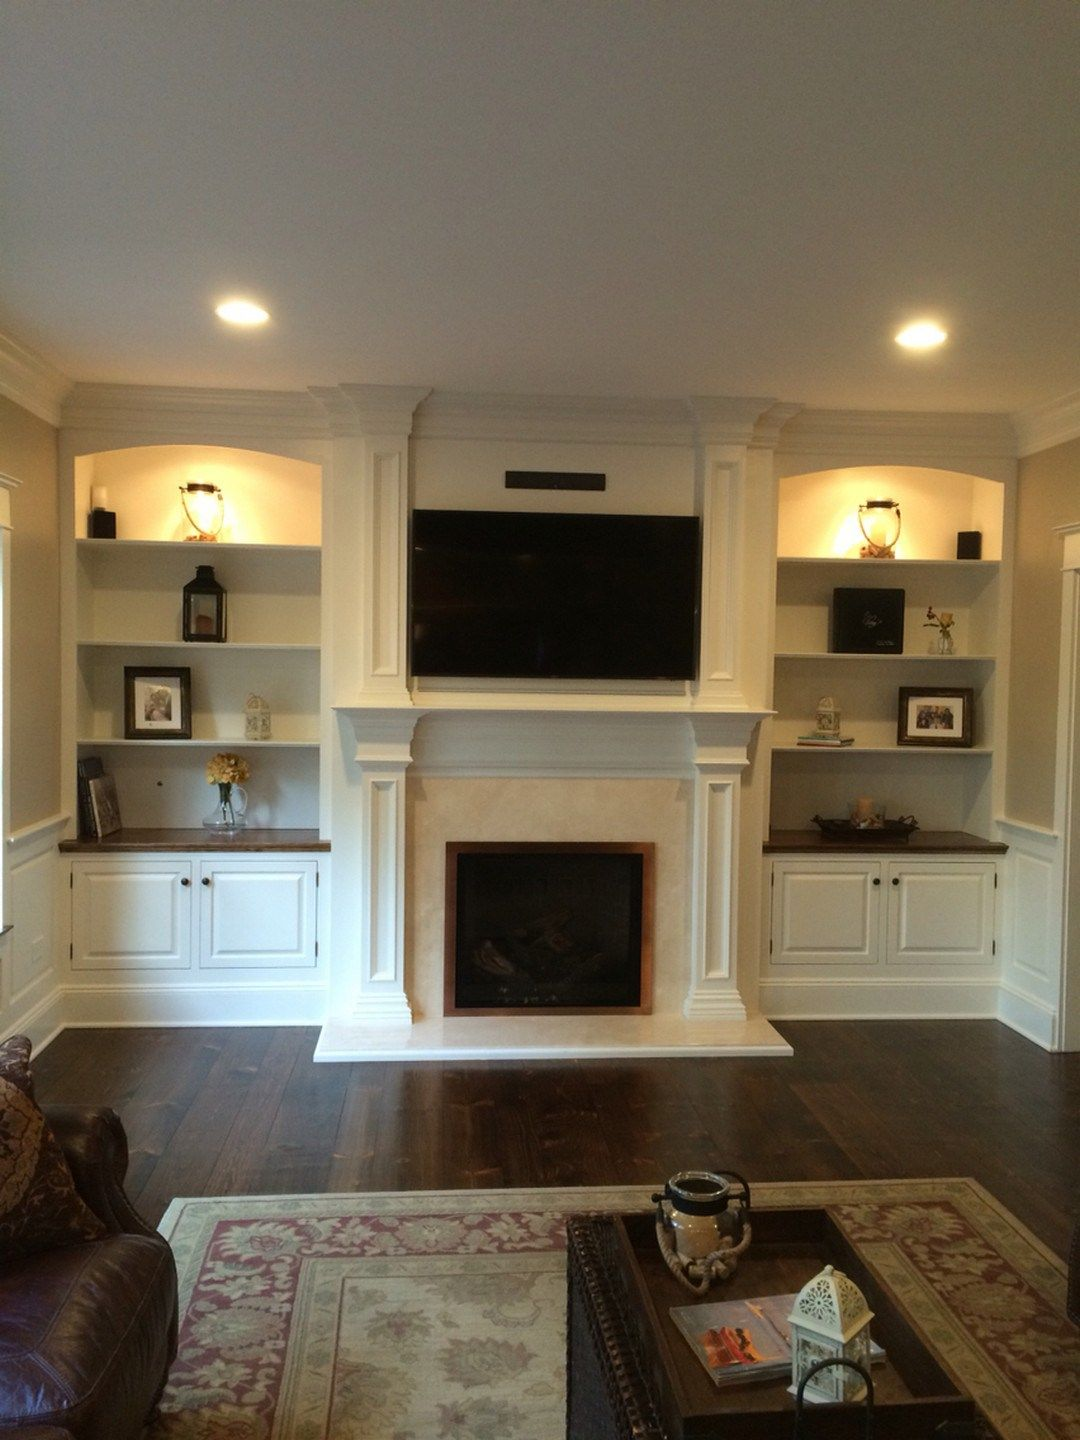 Awesome Built In Cabinets Around Fireplace Design Ideas (4 ...